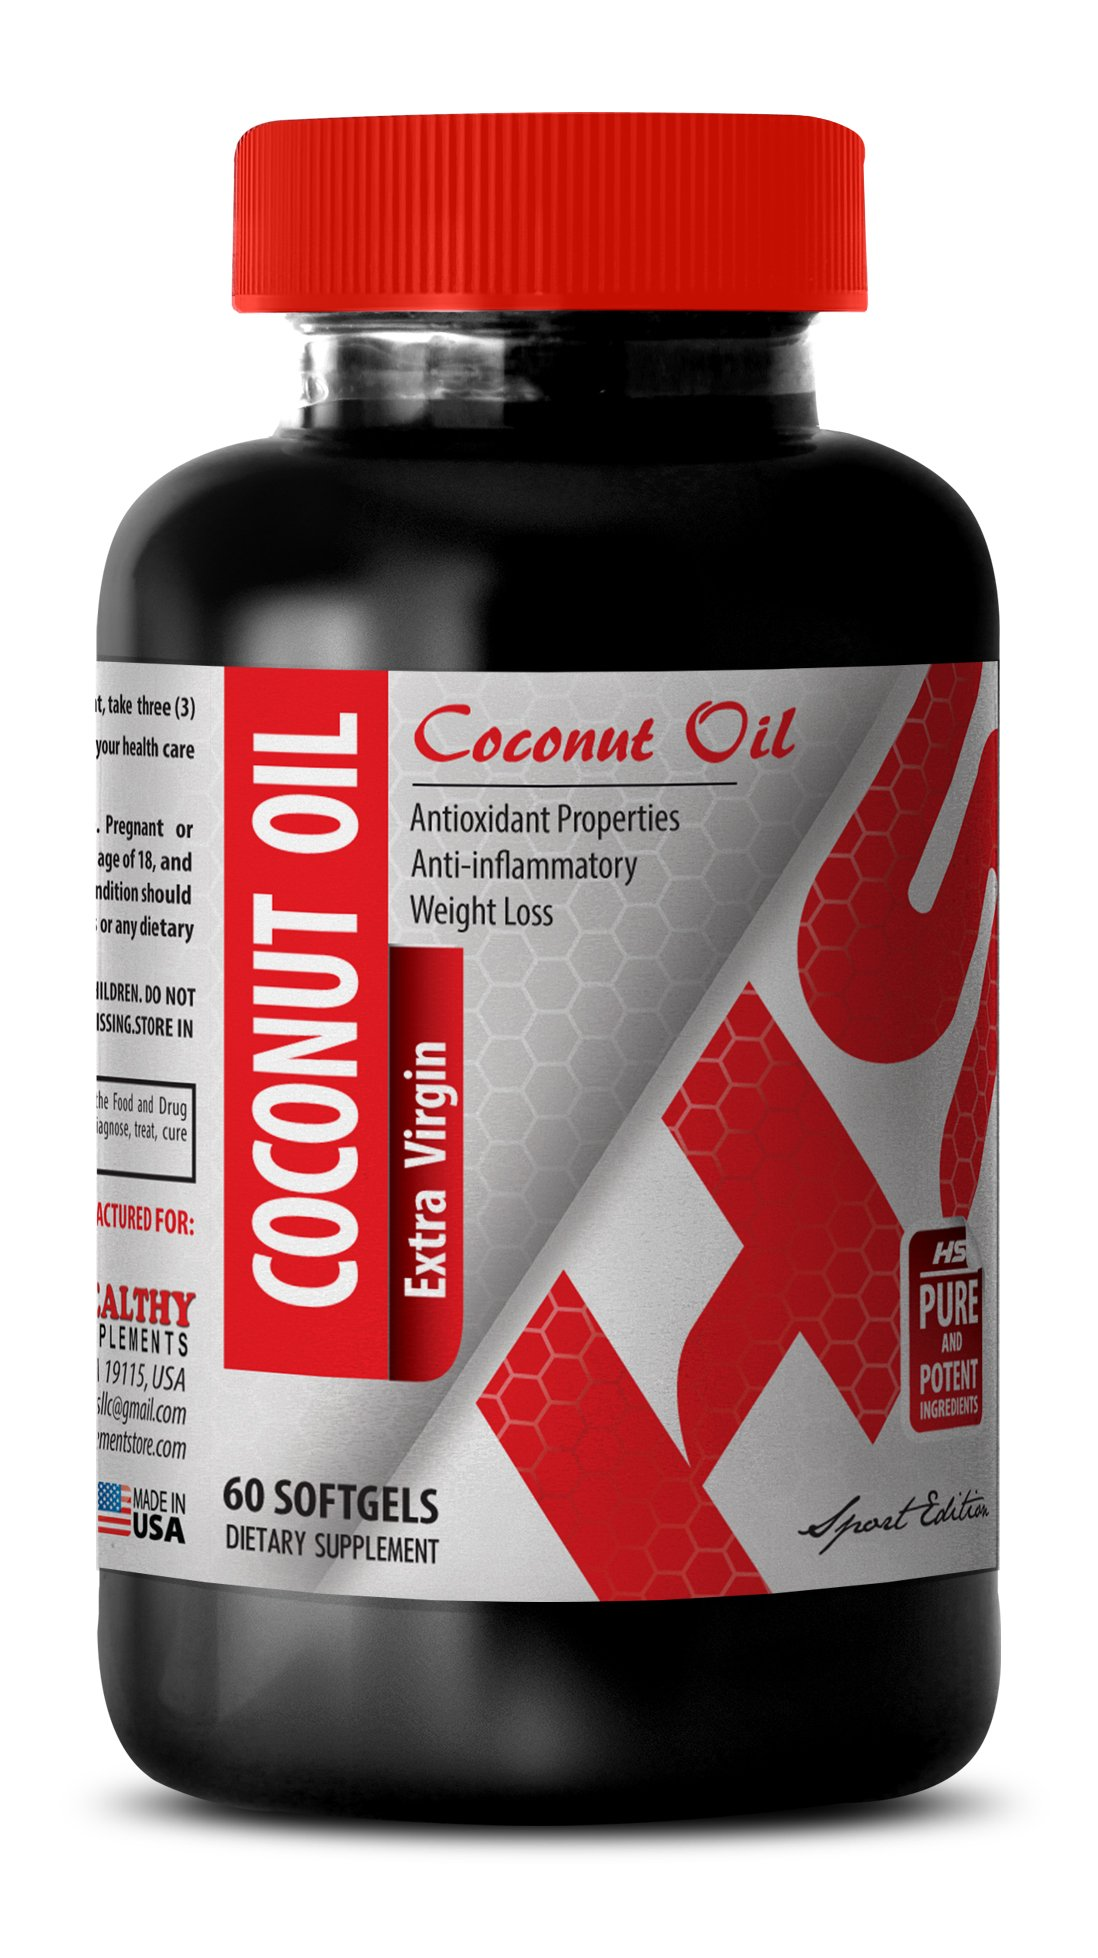 Coconut oil in pills - PURIFIED COCONUT OIL EXTRA VIRGIN 3000 MG - for losing weight (1 Bottle)